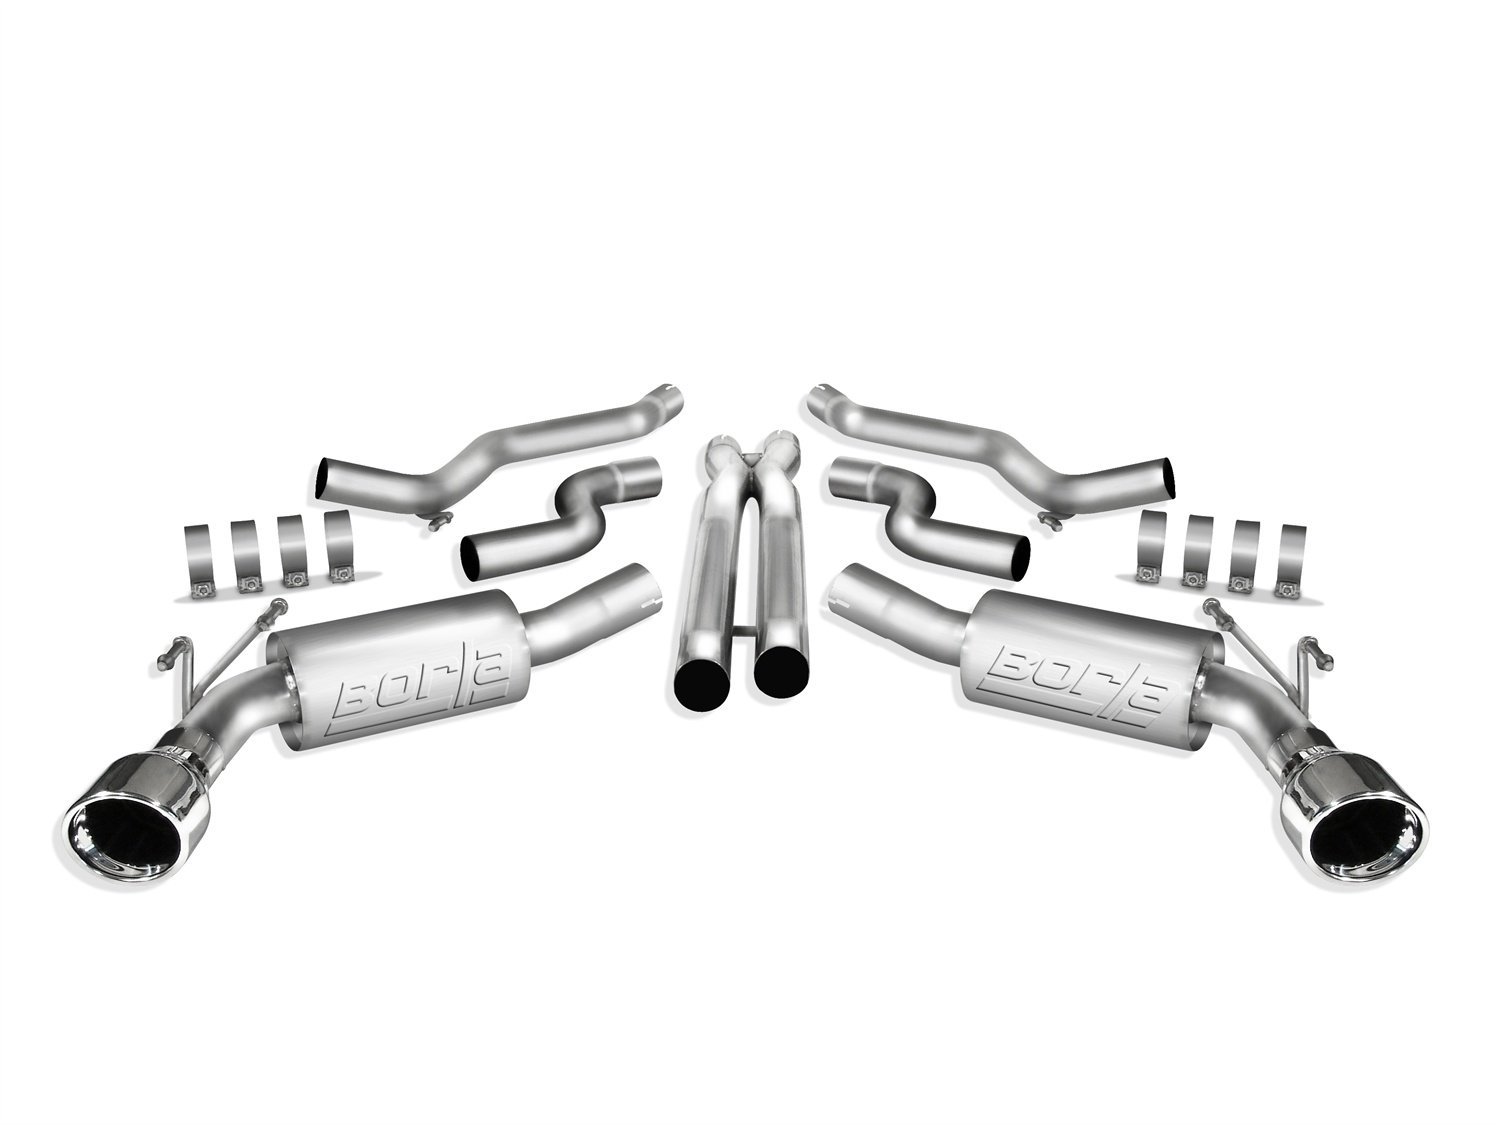 Borla ATAK Stainless Steel Aggressive Cat-Back Exhaust System}